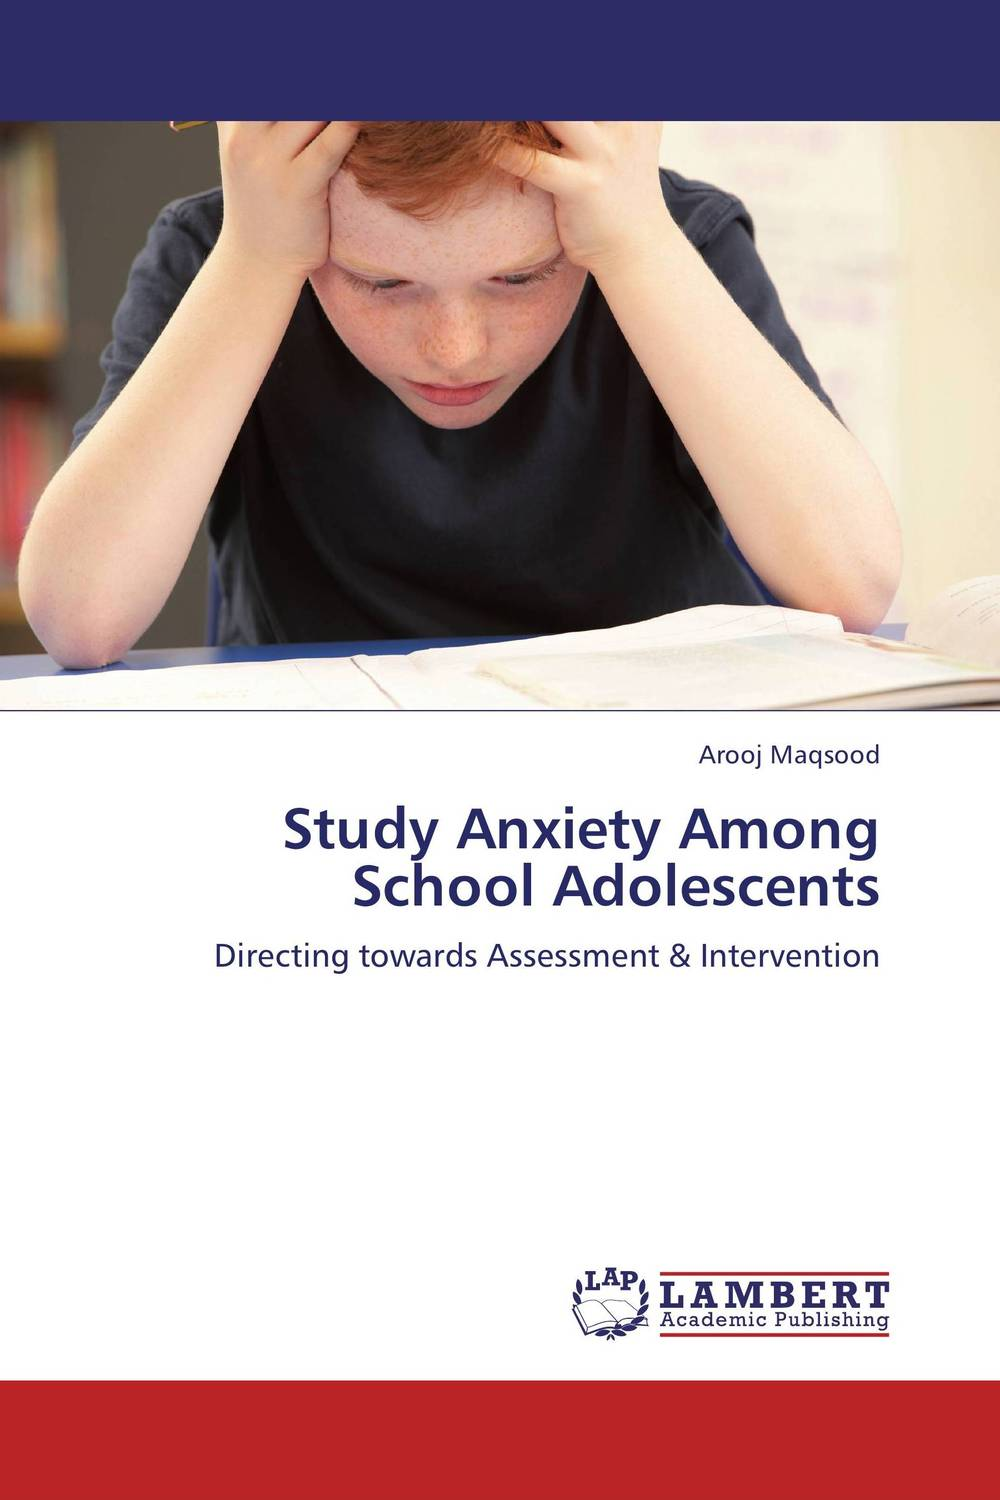 Study Anxiety Among School Adolescents test anxiety and academic achievement